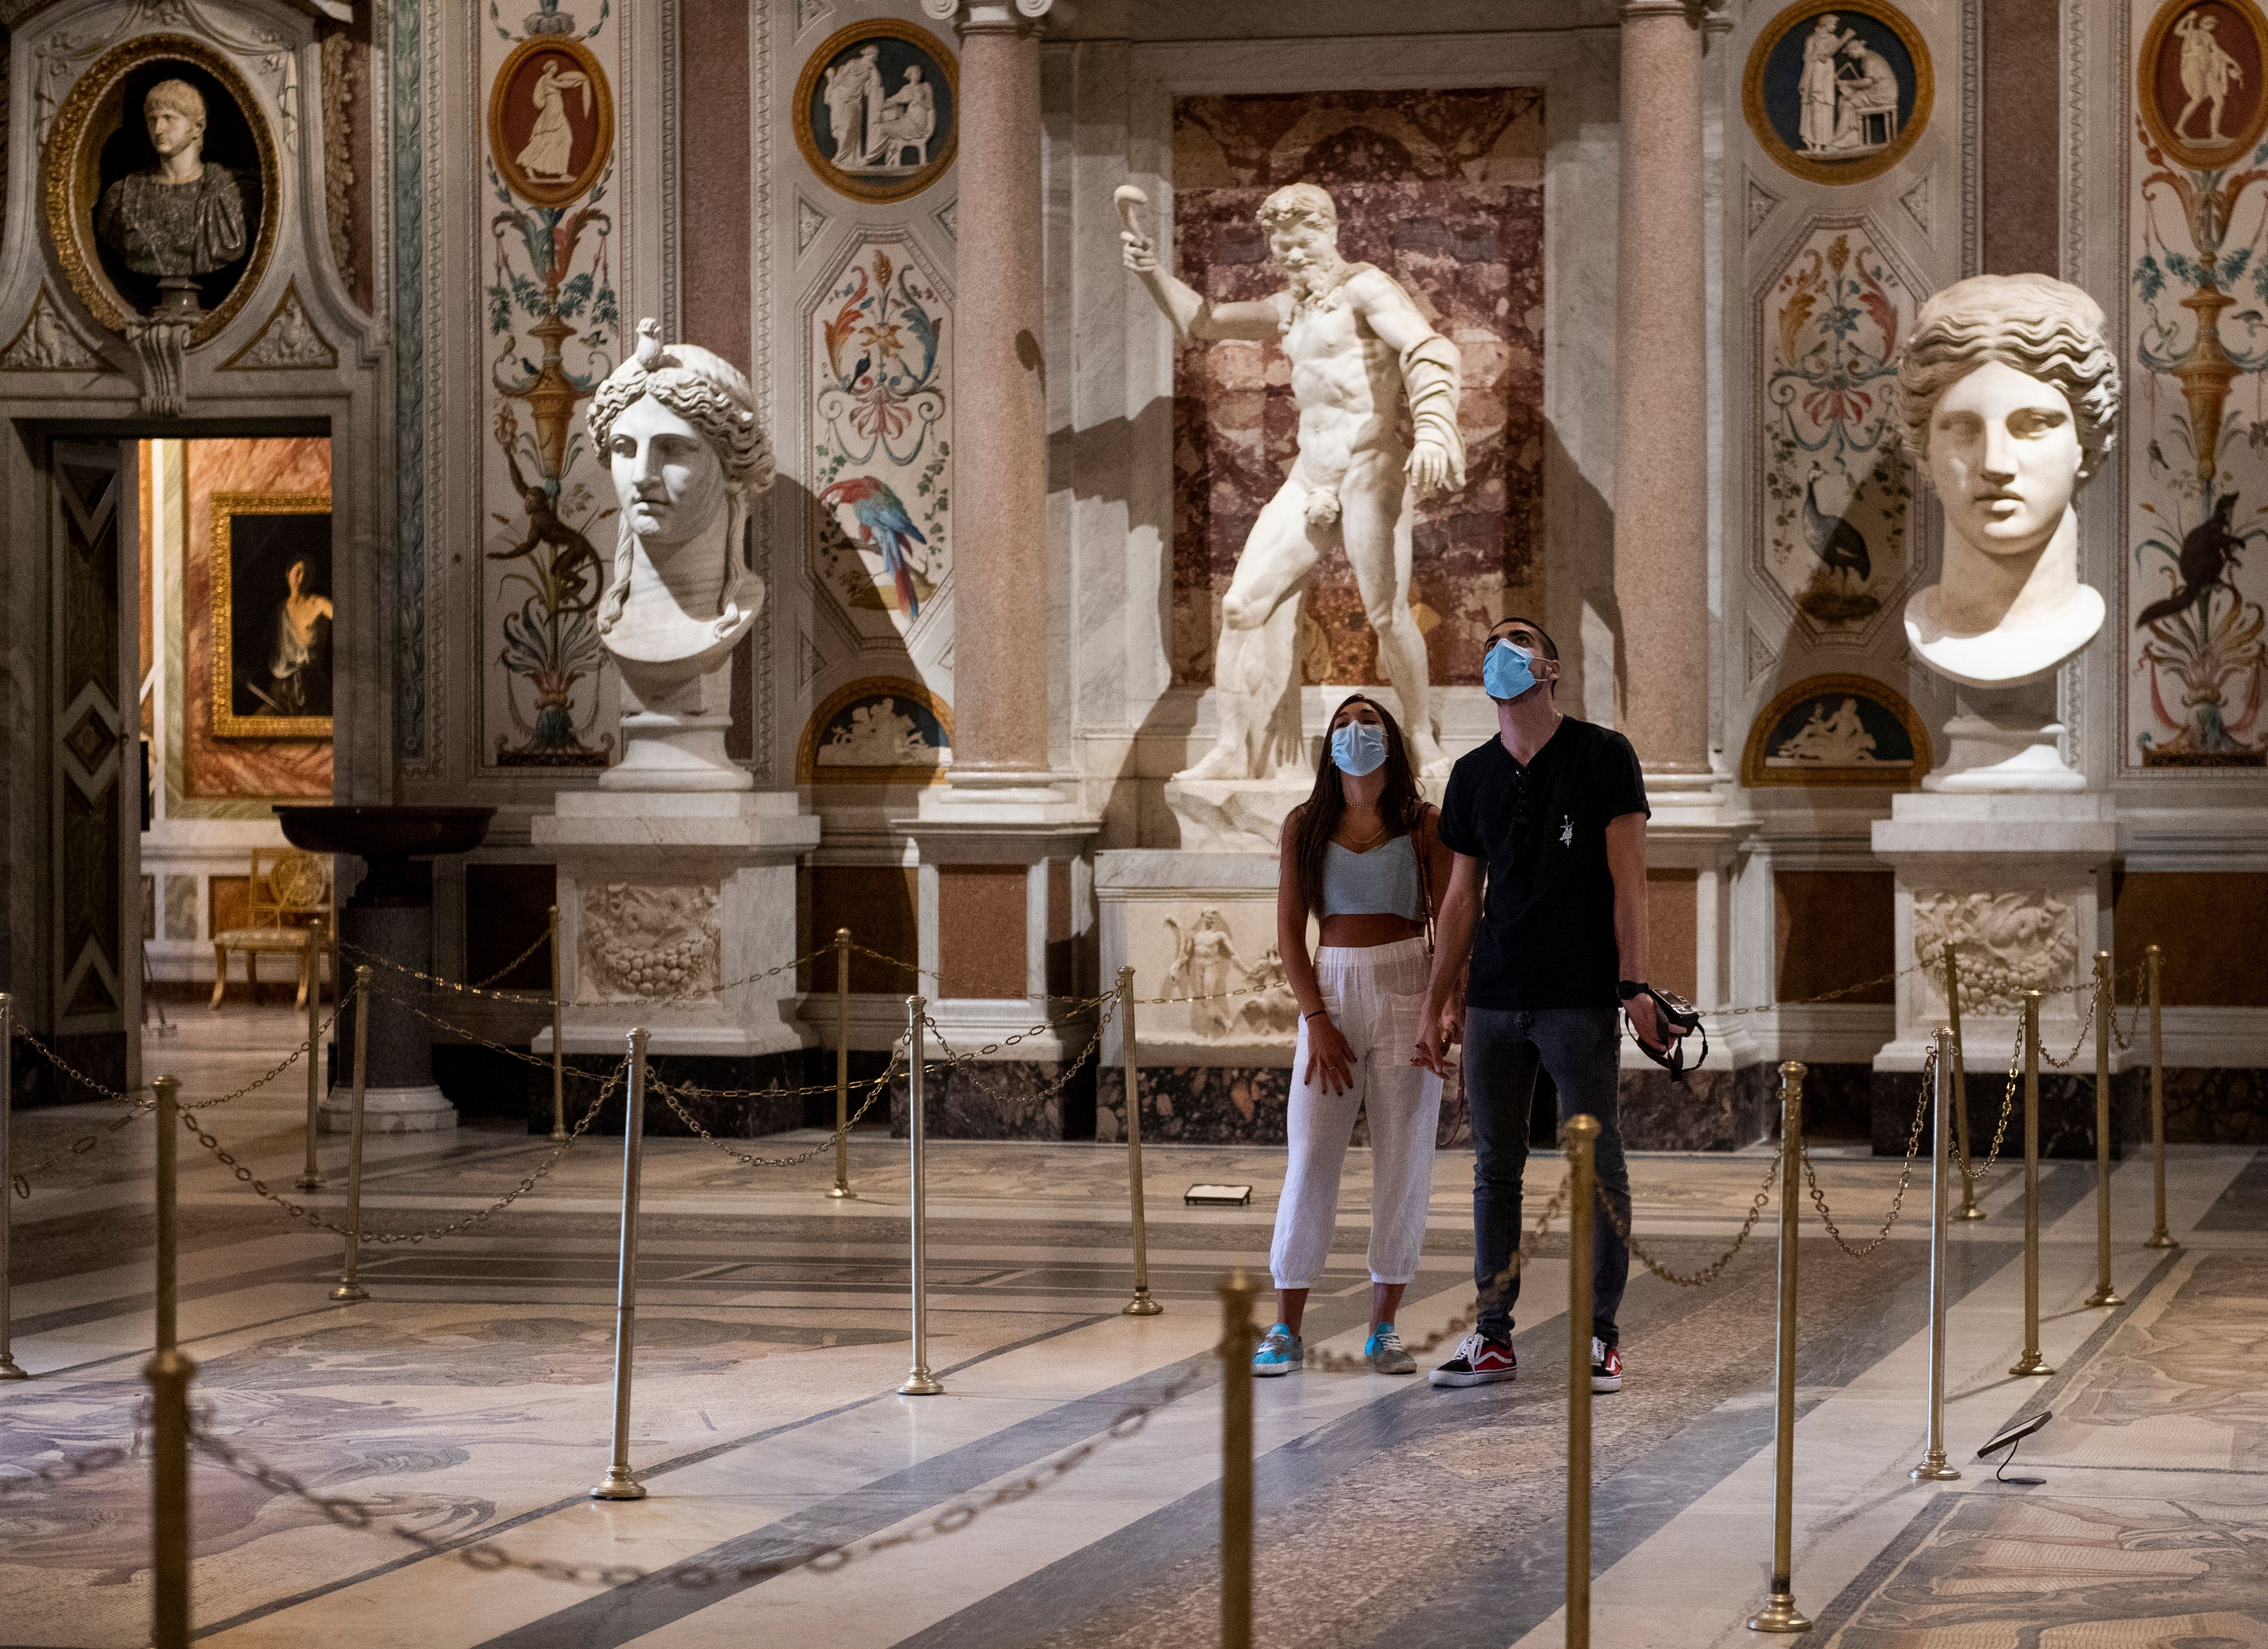 Visitors wearing a face mask view a room at the Galleria Borghese museum in Rome on May 19, 2020, as it reopens while the country's lockdown is easing after over two months. (Photo by TIZIANA FABI/AFP via Getty Images)